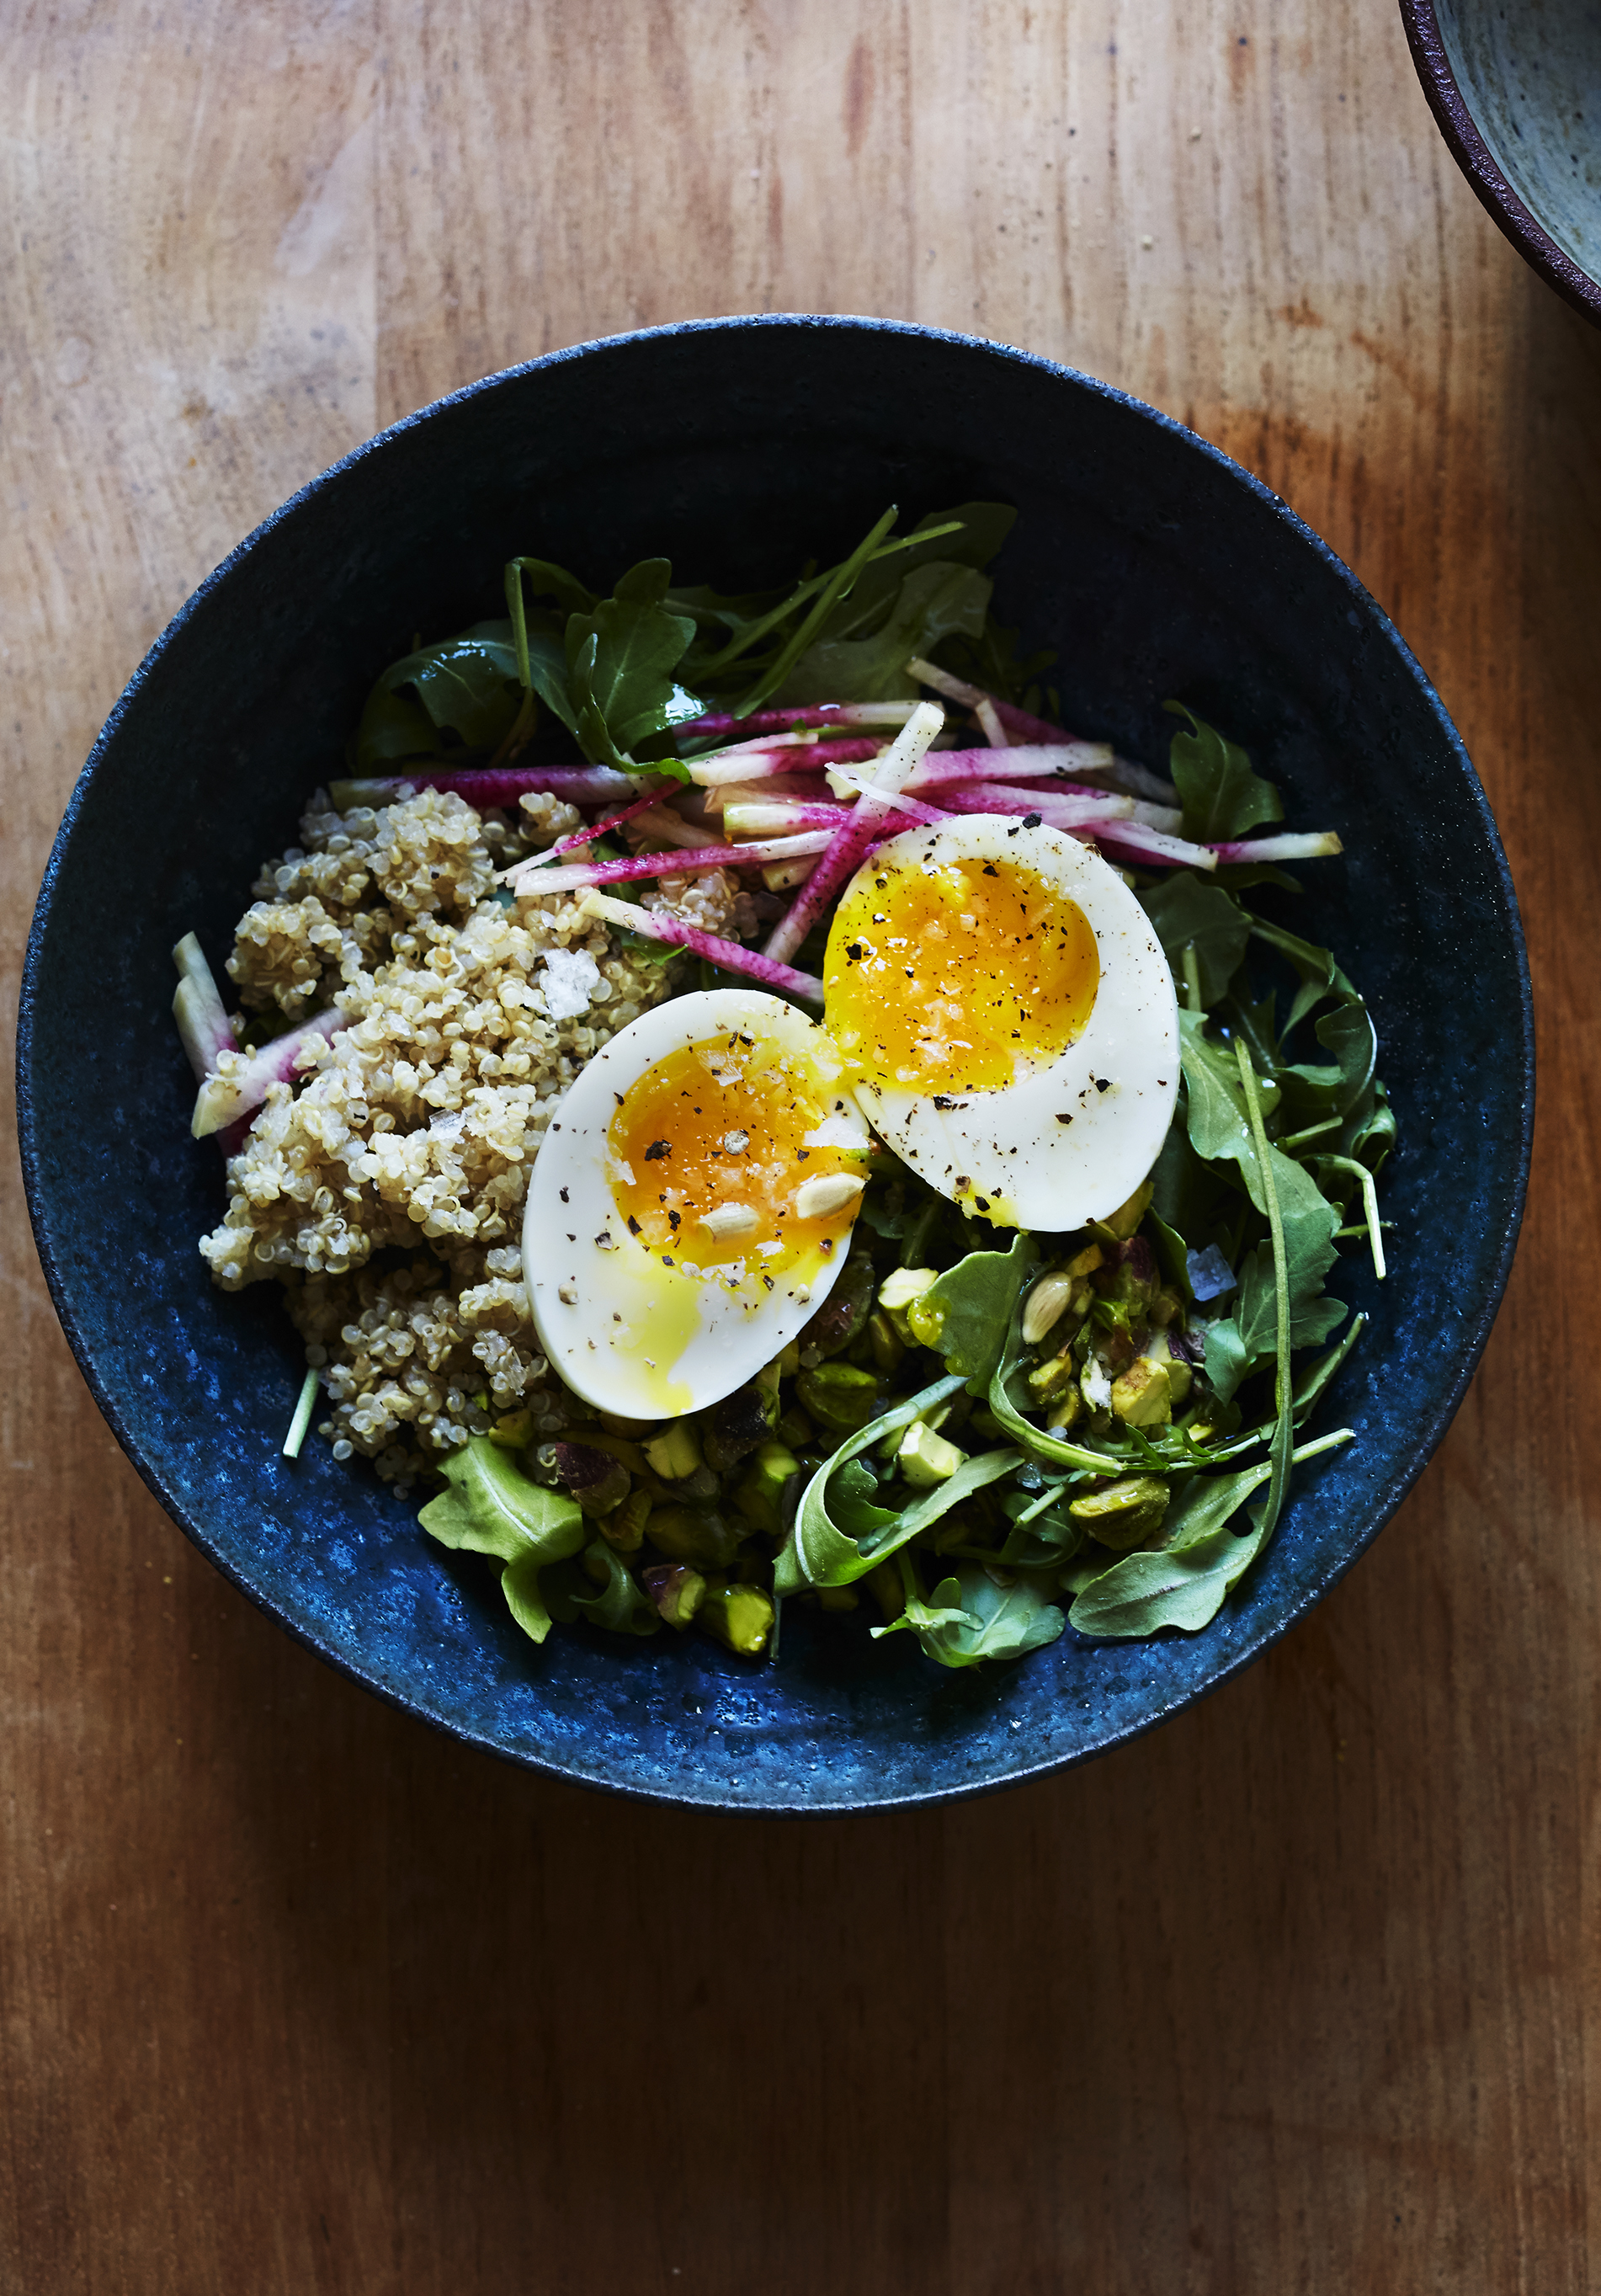 Arugula Salad with Radish, Pistachio & Soft Eggs (GF, V)